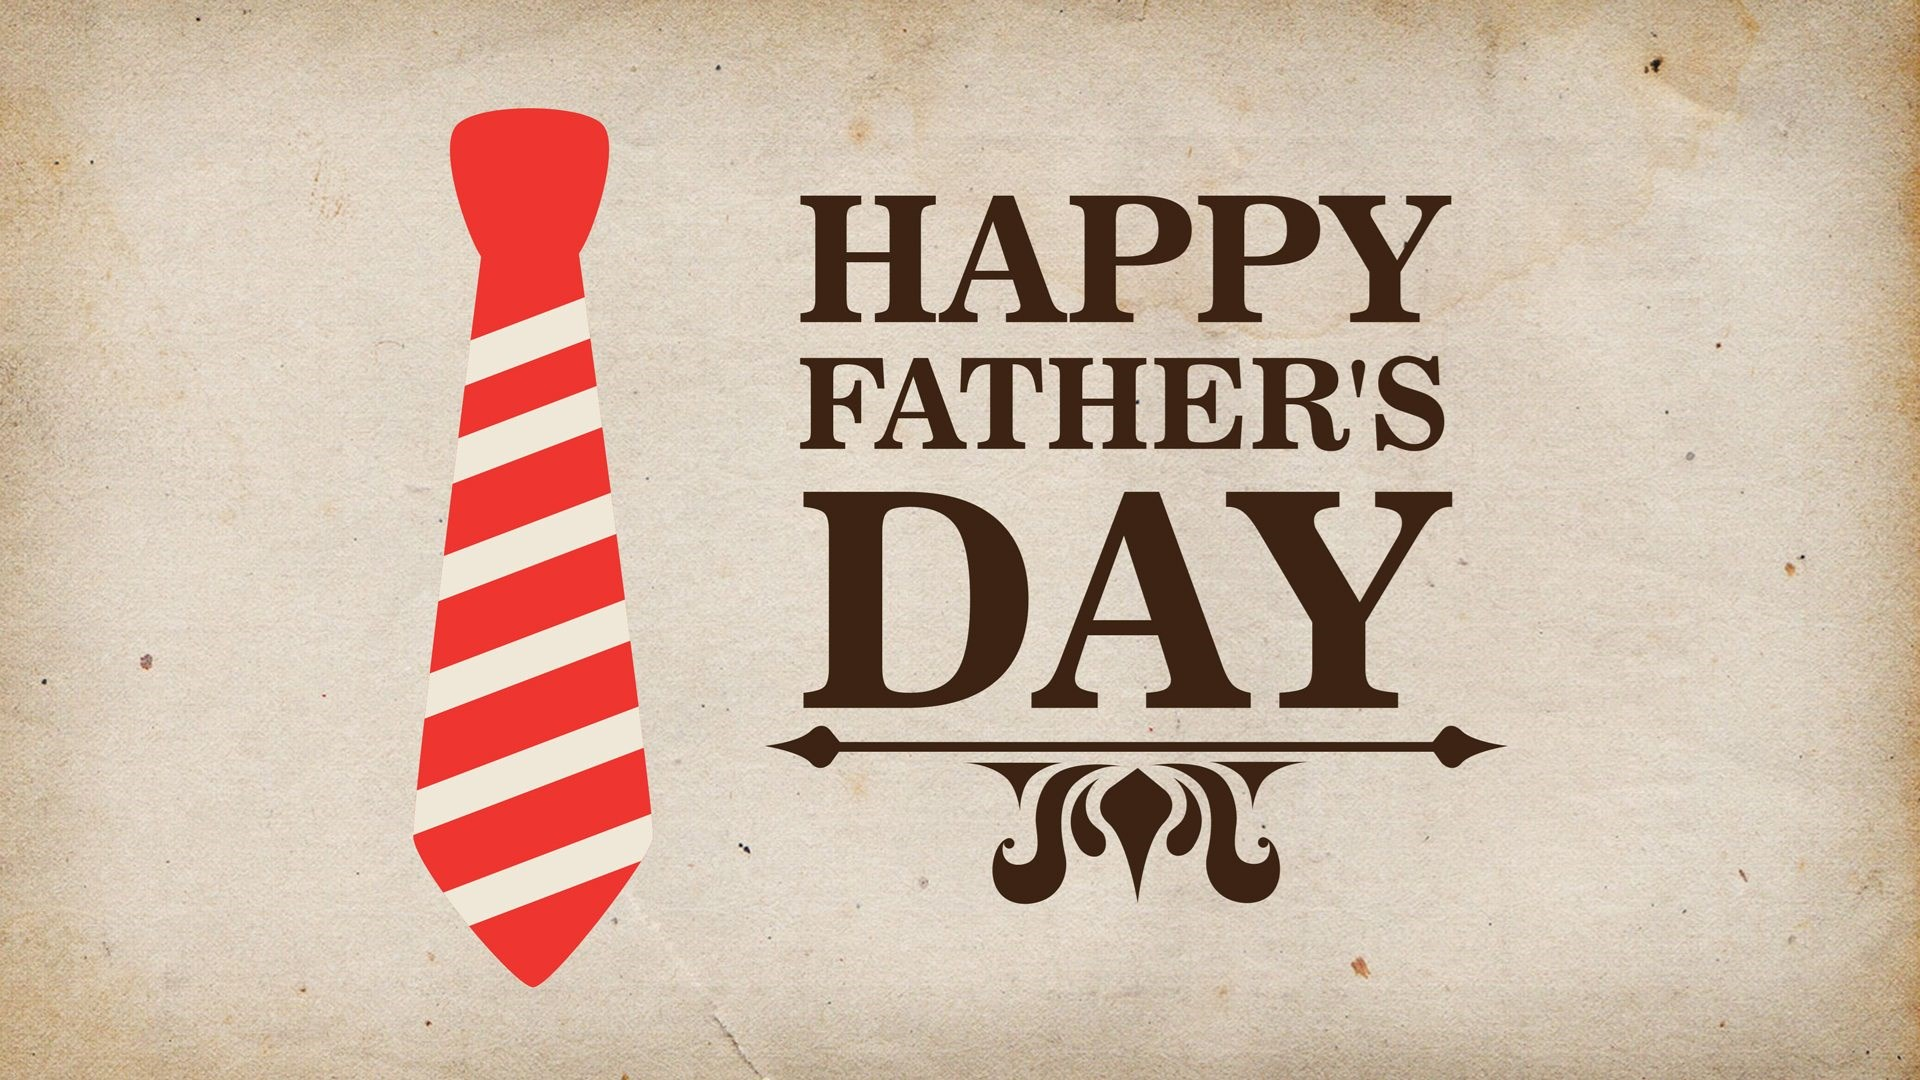 father's day images - HD1920×1080